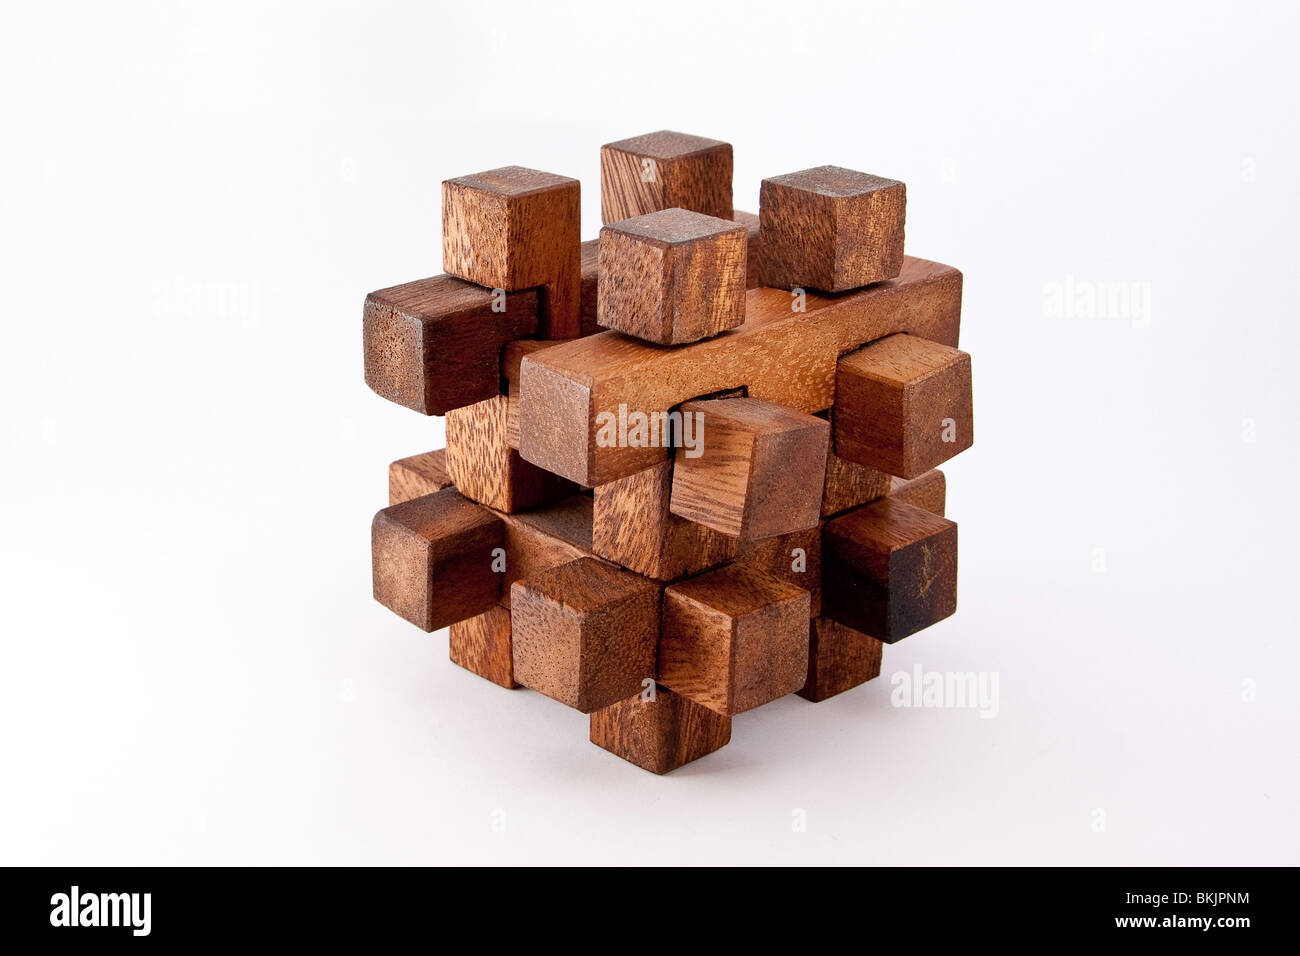 A wood made puzzle - Stock Image